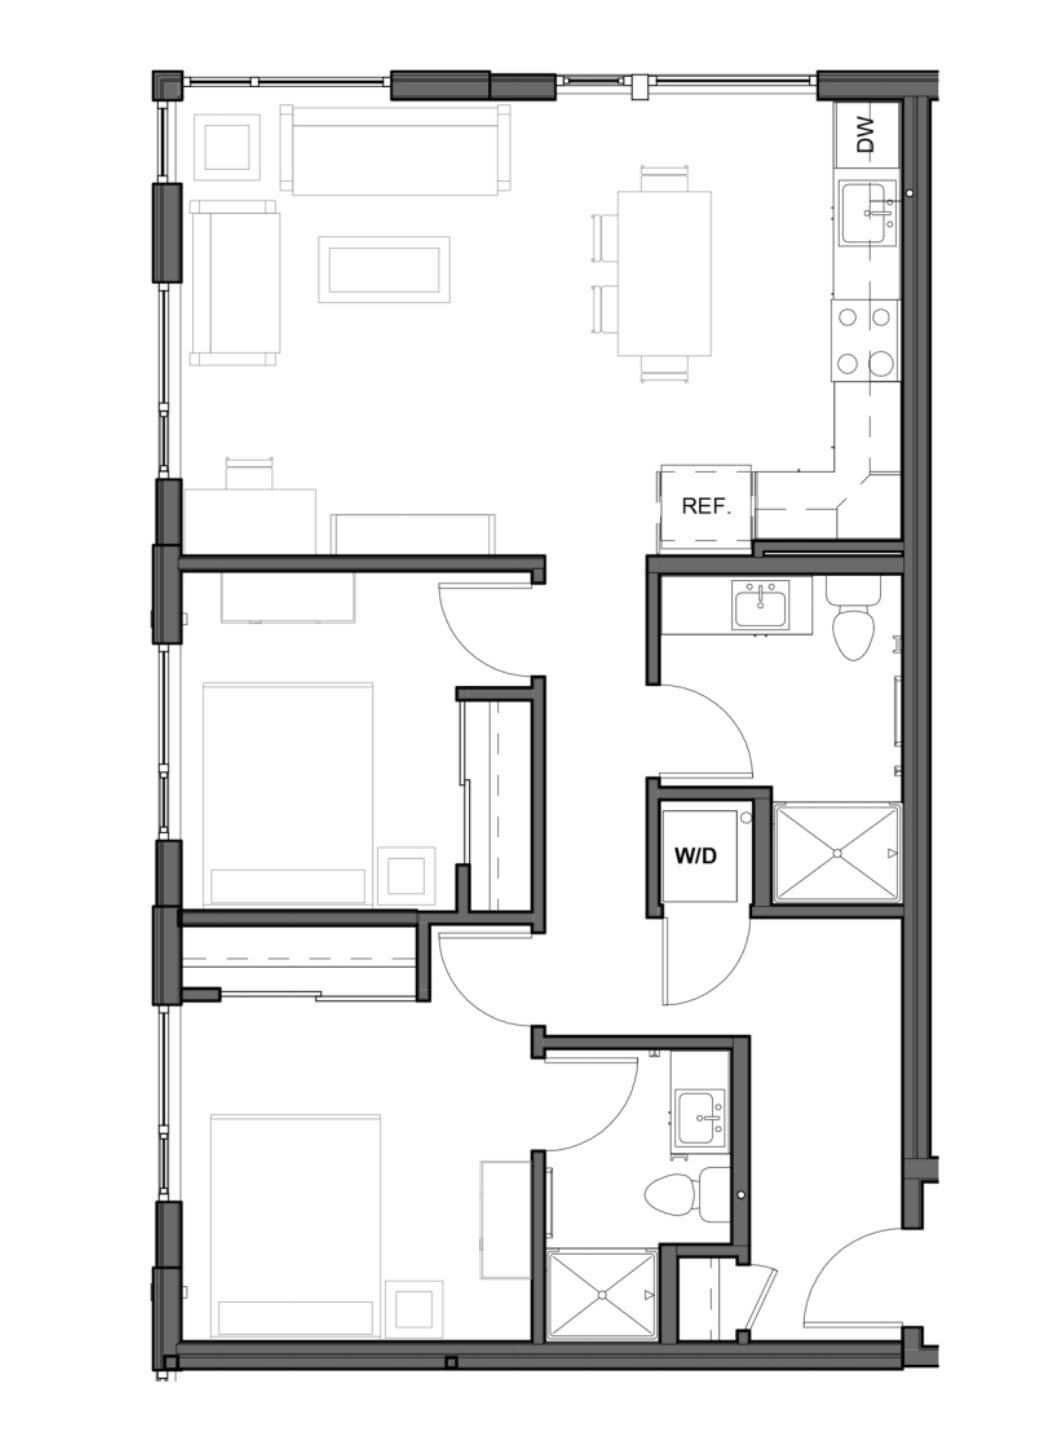 2 BD 2 BA – D Floor Plan